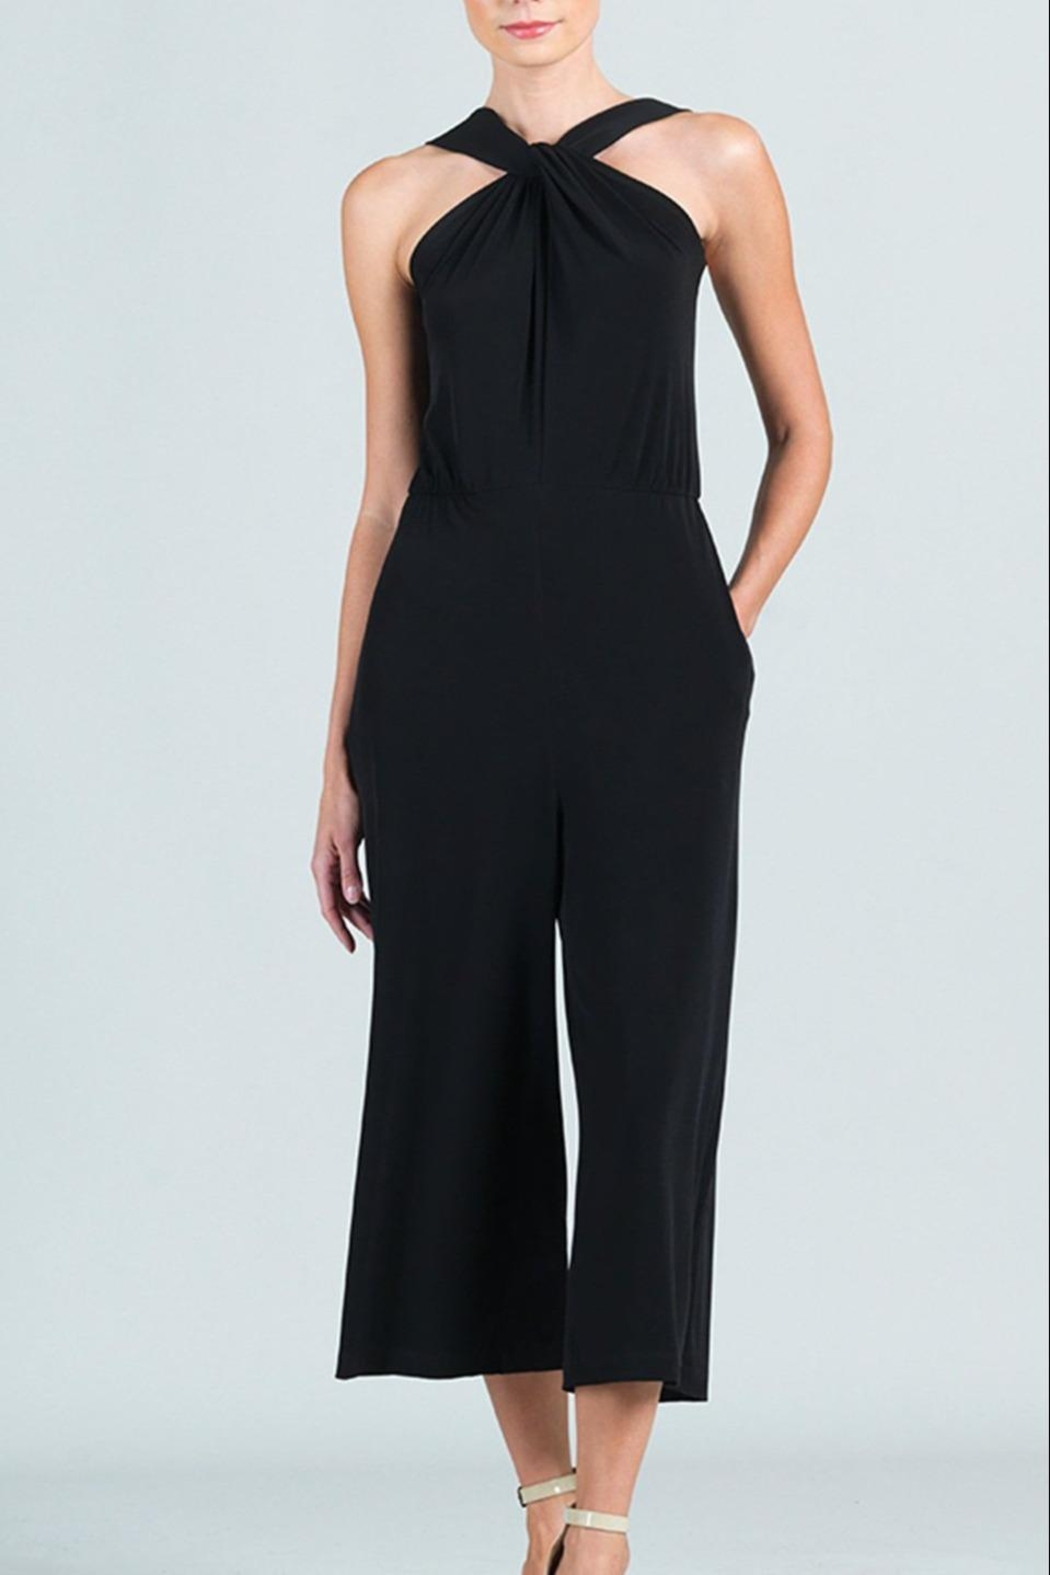 Clara Sunwoo Cross-Front Cropped-Halter Jumpsuit - Main Image